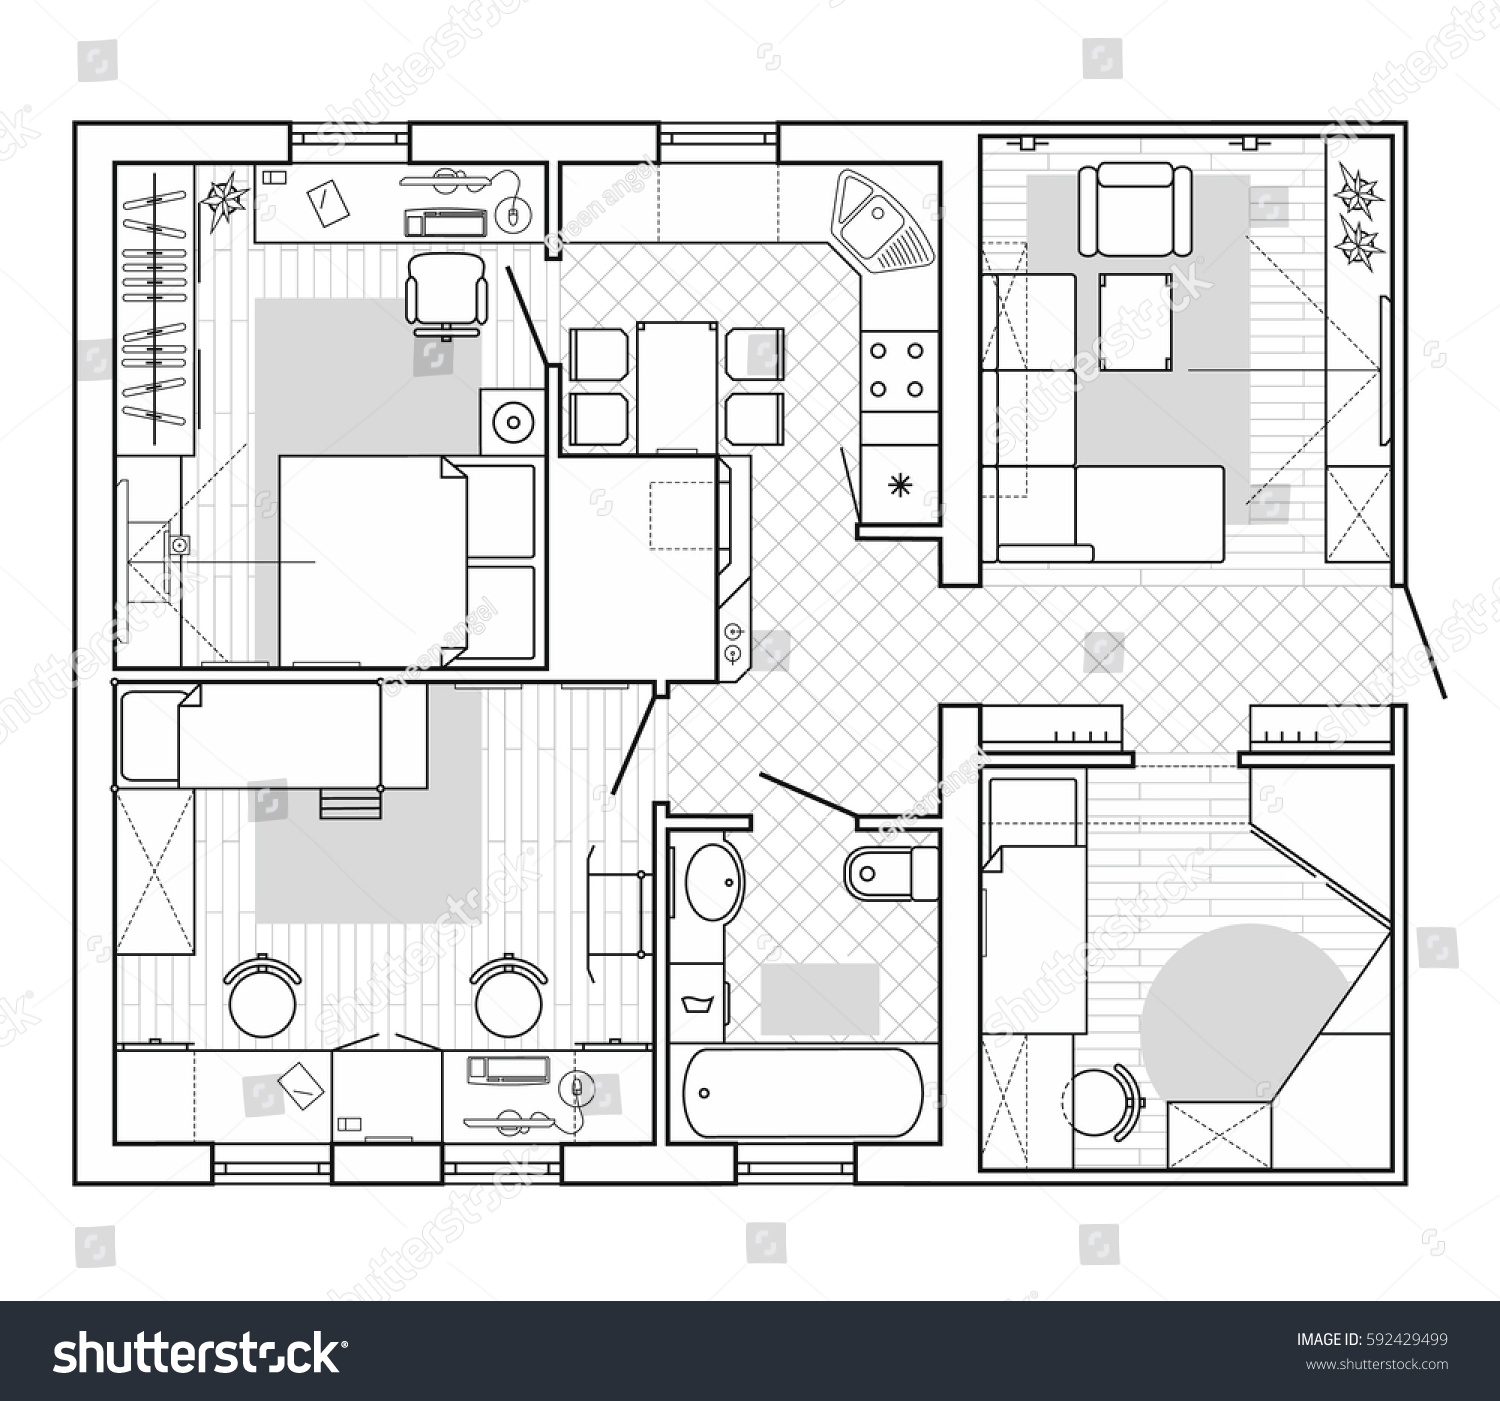 Layout Design Of House Of Black White Architectural Plan House Layout Stock Vector